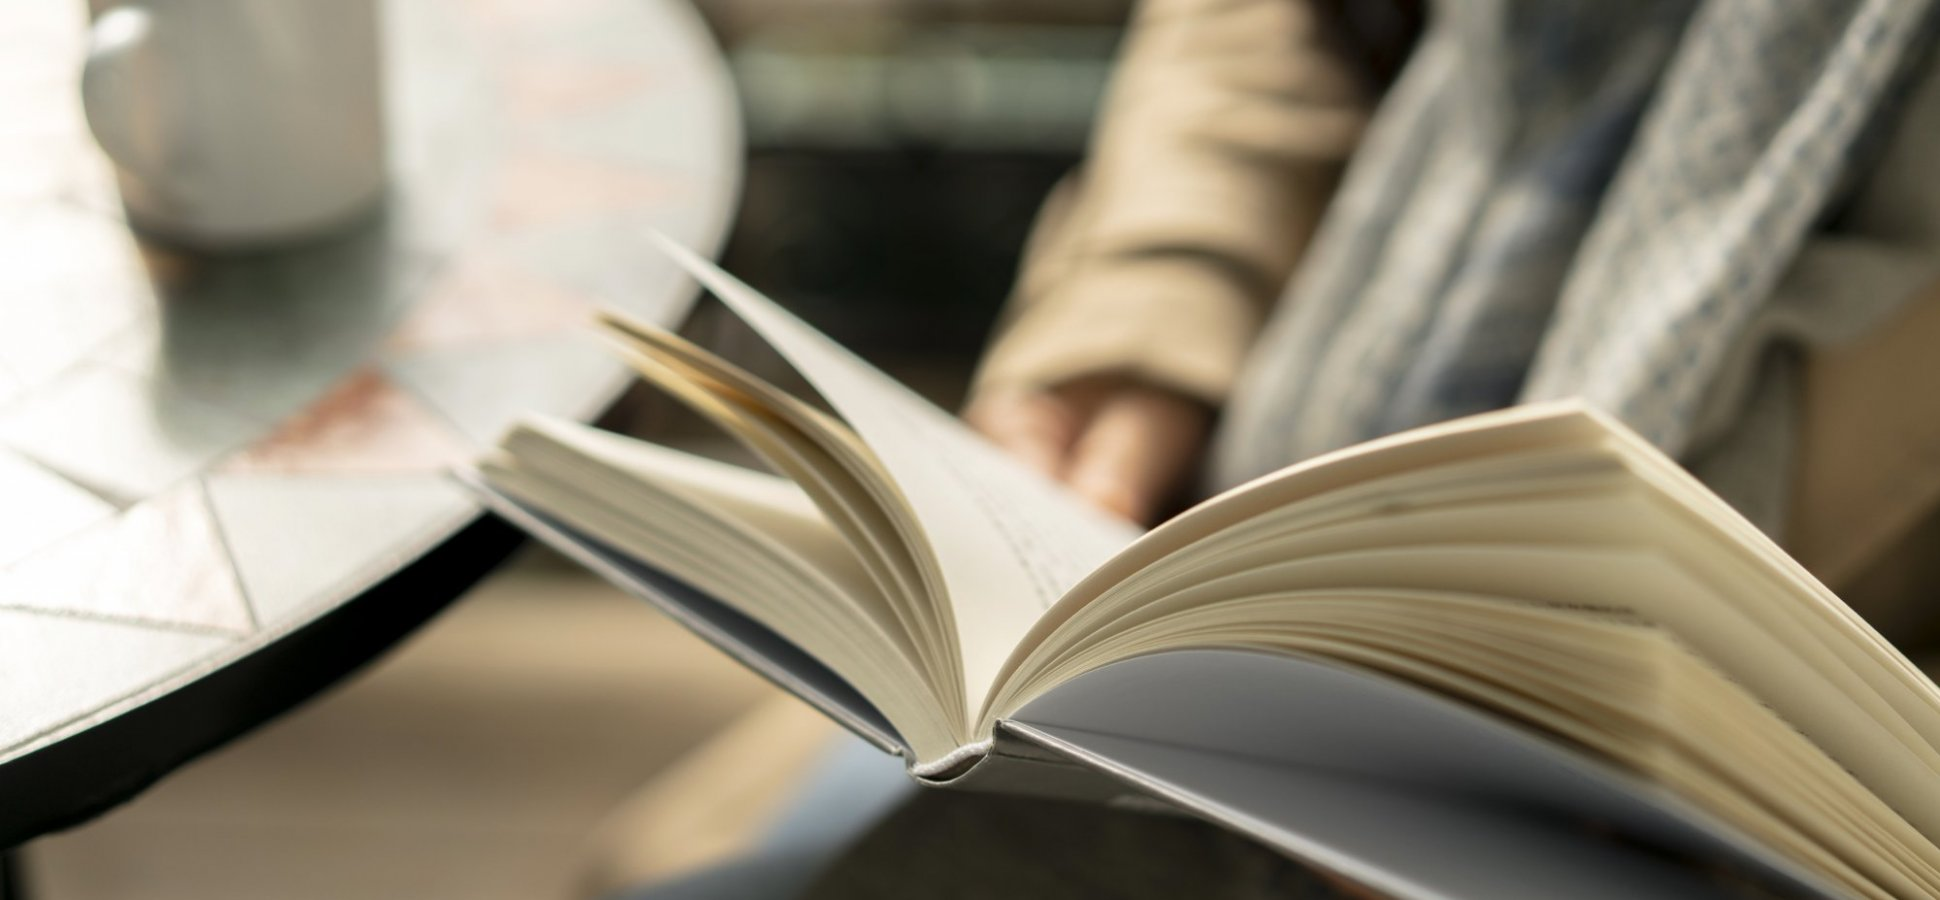 These 5 Books Will Help Put You in an Innovative Mindset